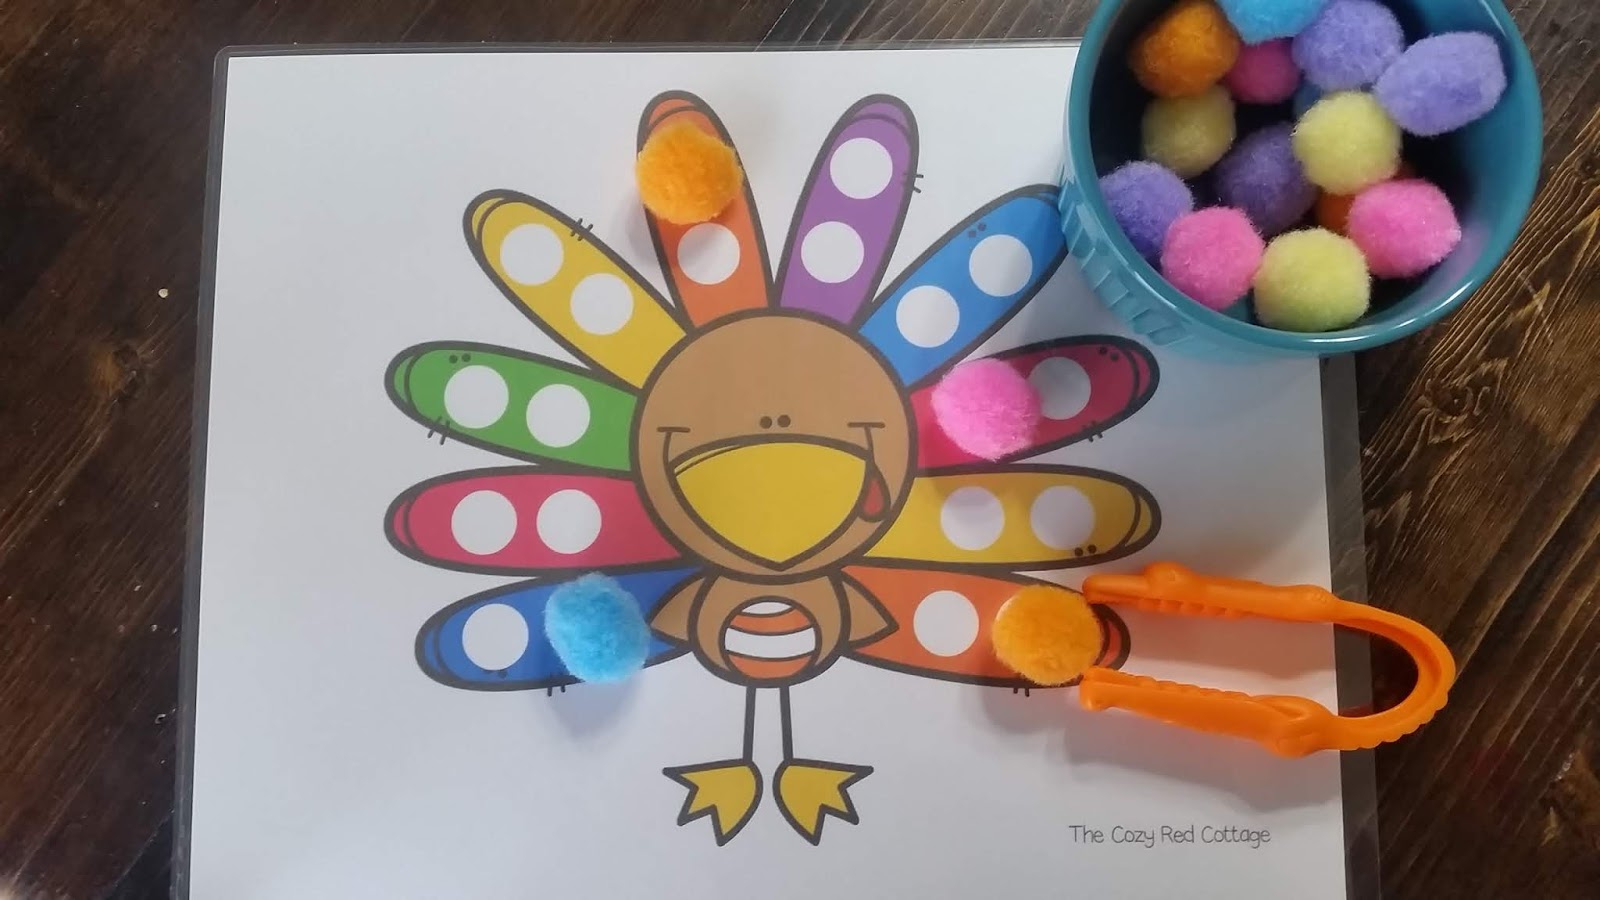 The Cozy Red Cottage: Color Sort Turkey (Free Printable) for The Cozy Red Cottage